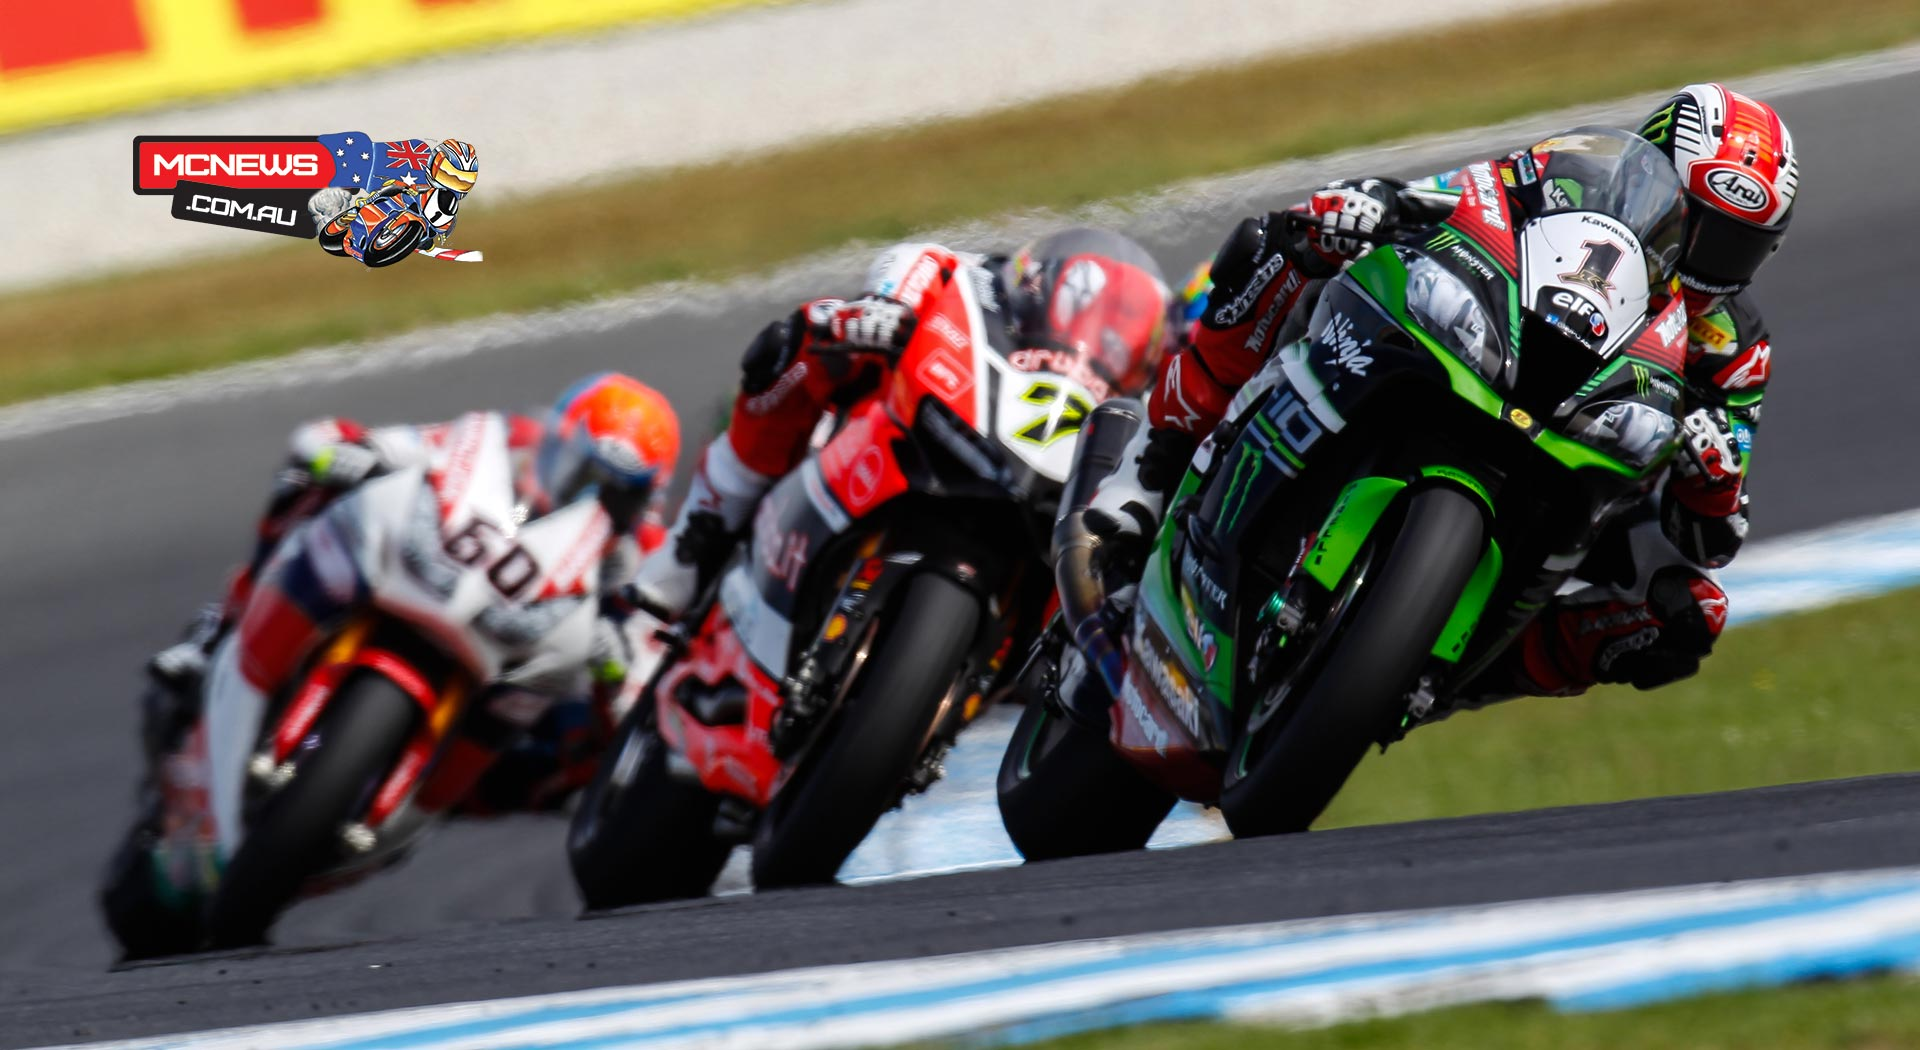 WorldSBK 2016 - Round One - Phillip Island - Tom Sykes and Chaz Davies